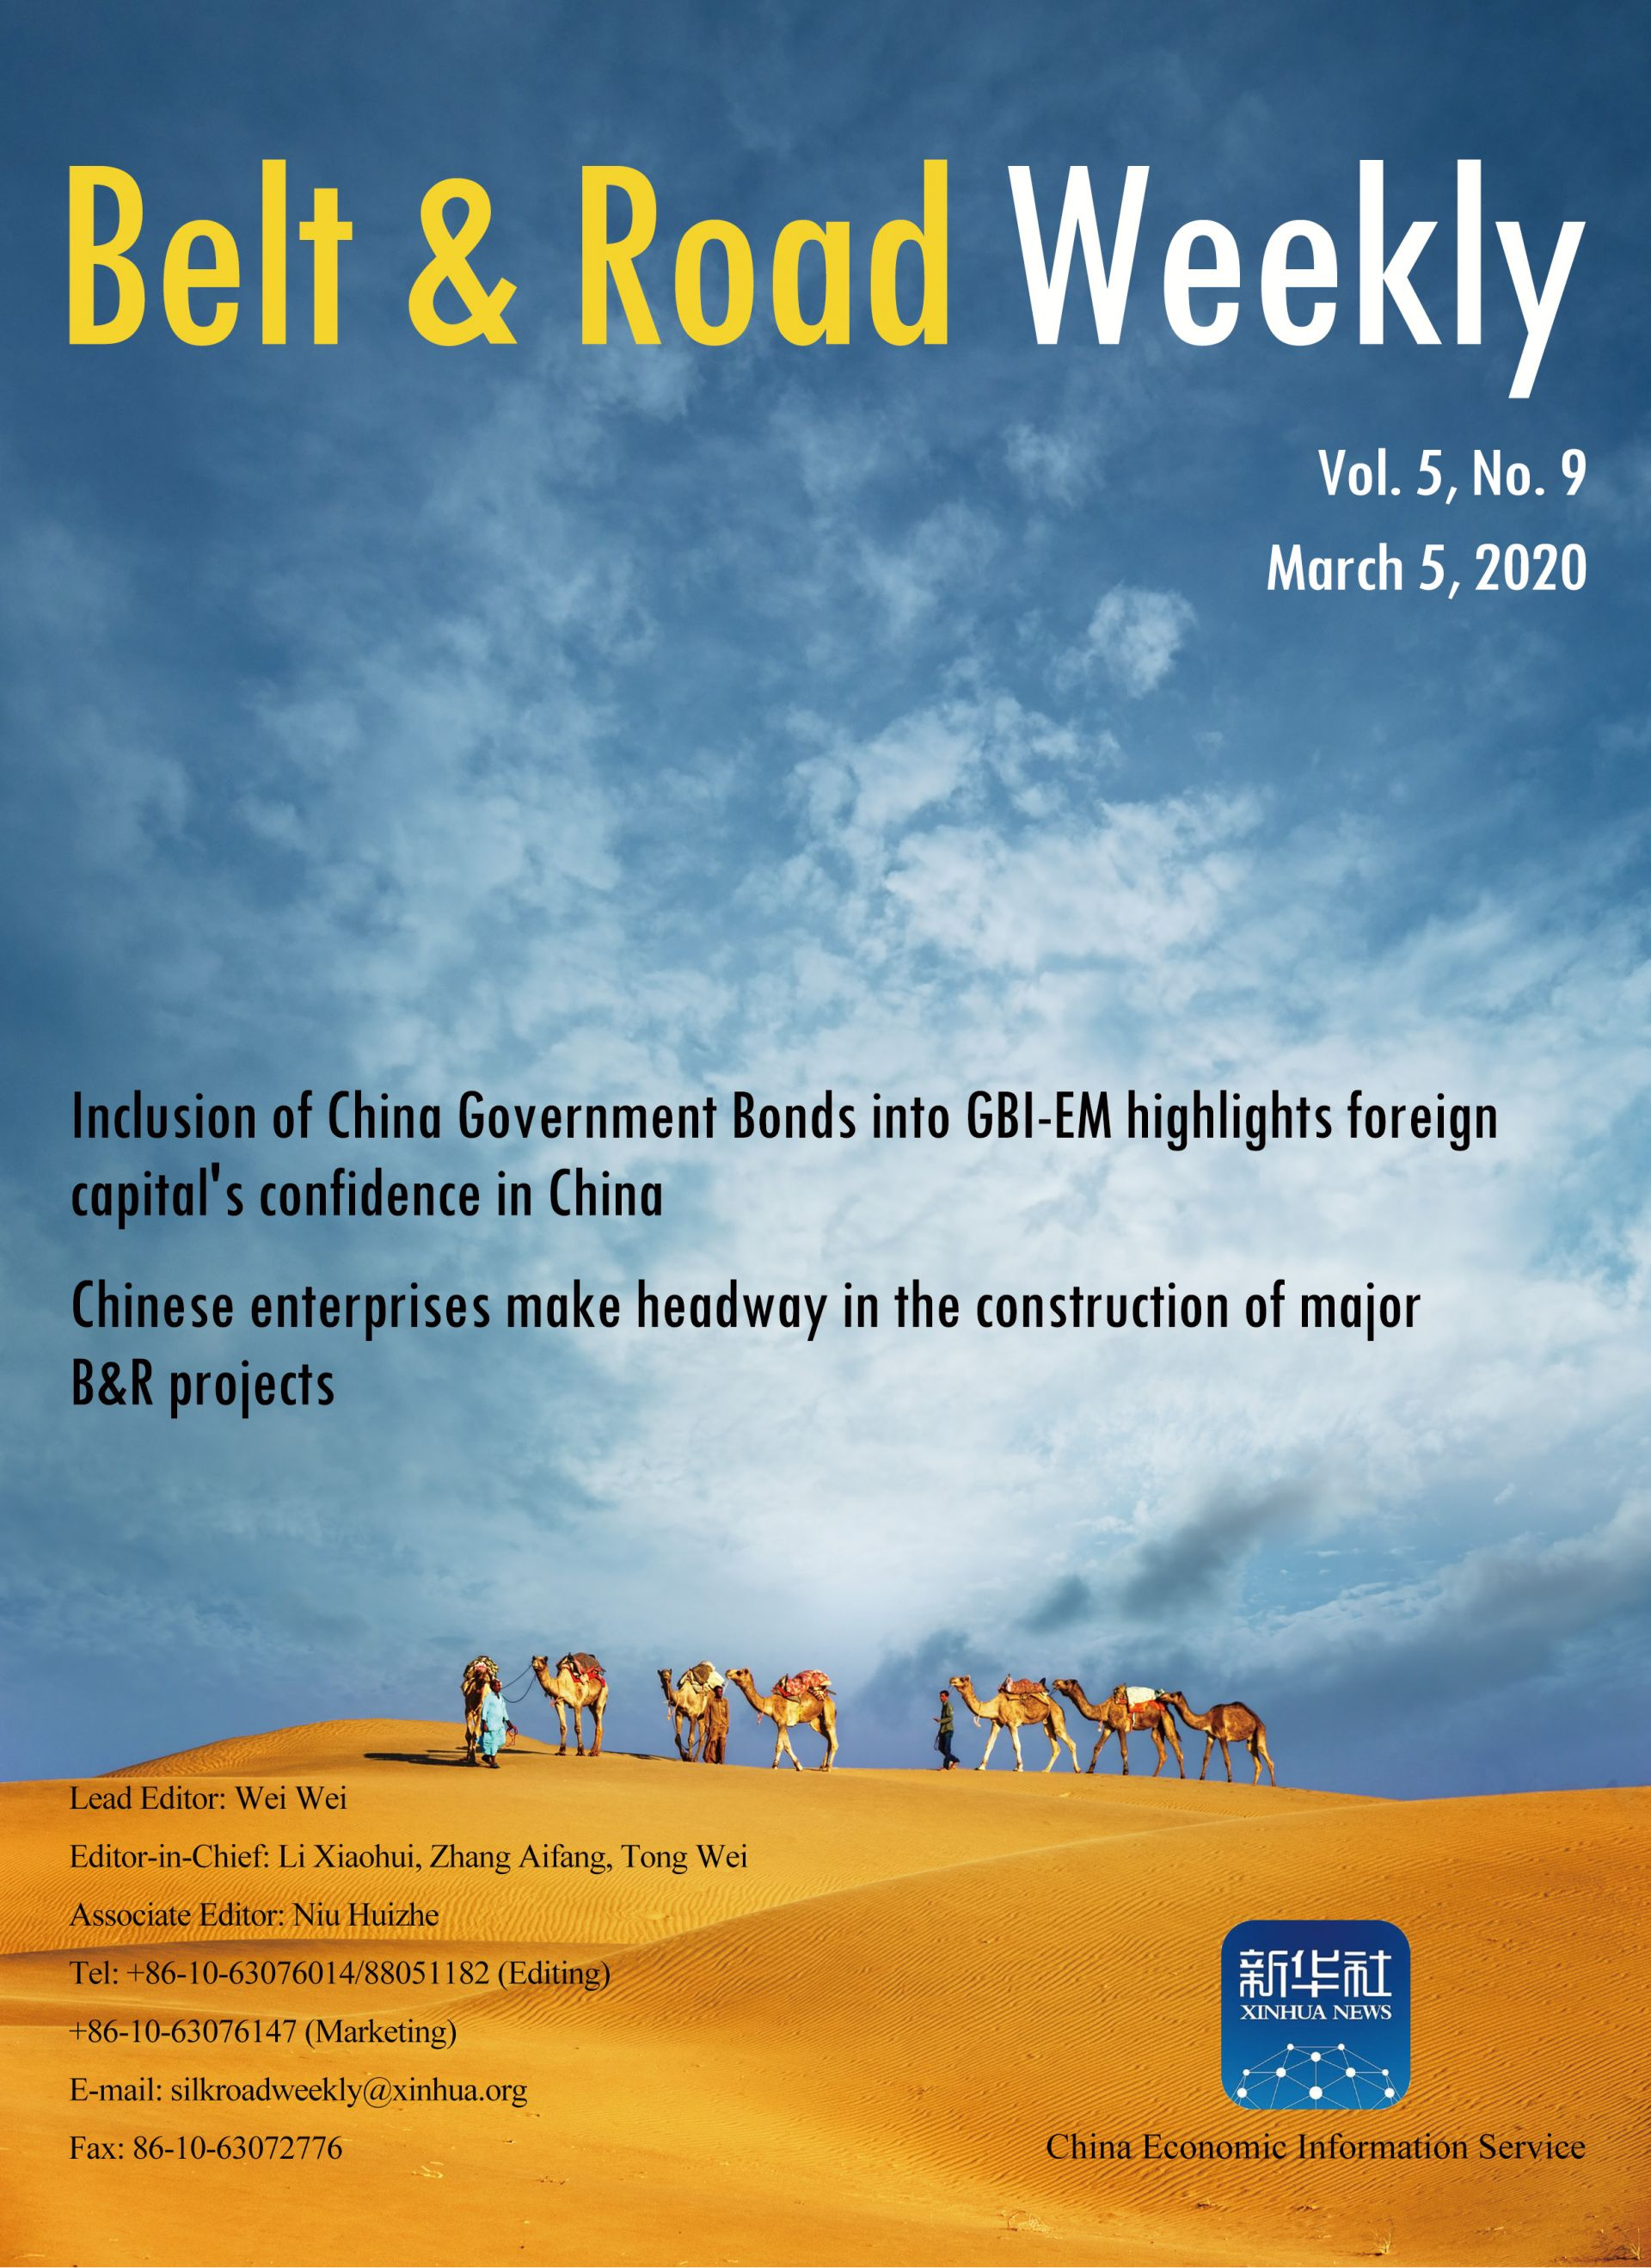 Belt & Road Weekly Vol. 5 No. 9